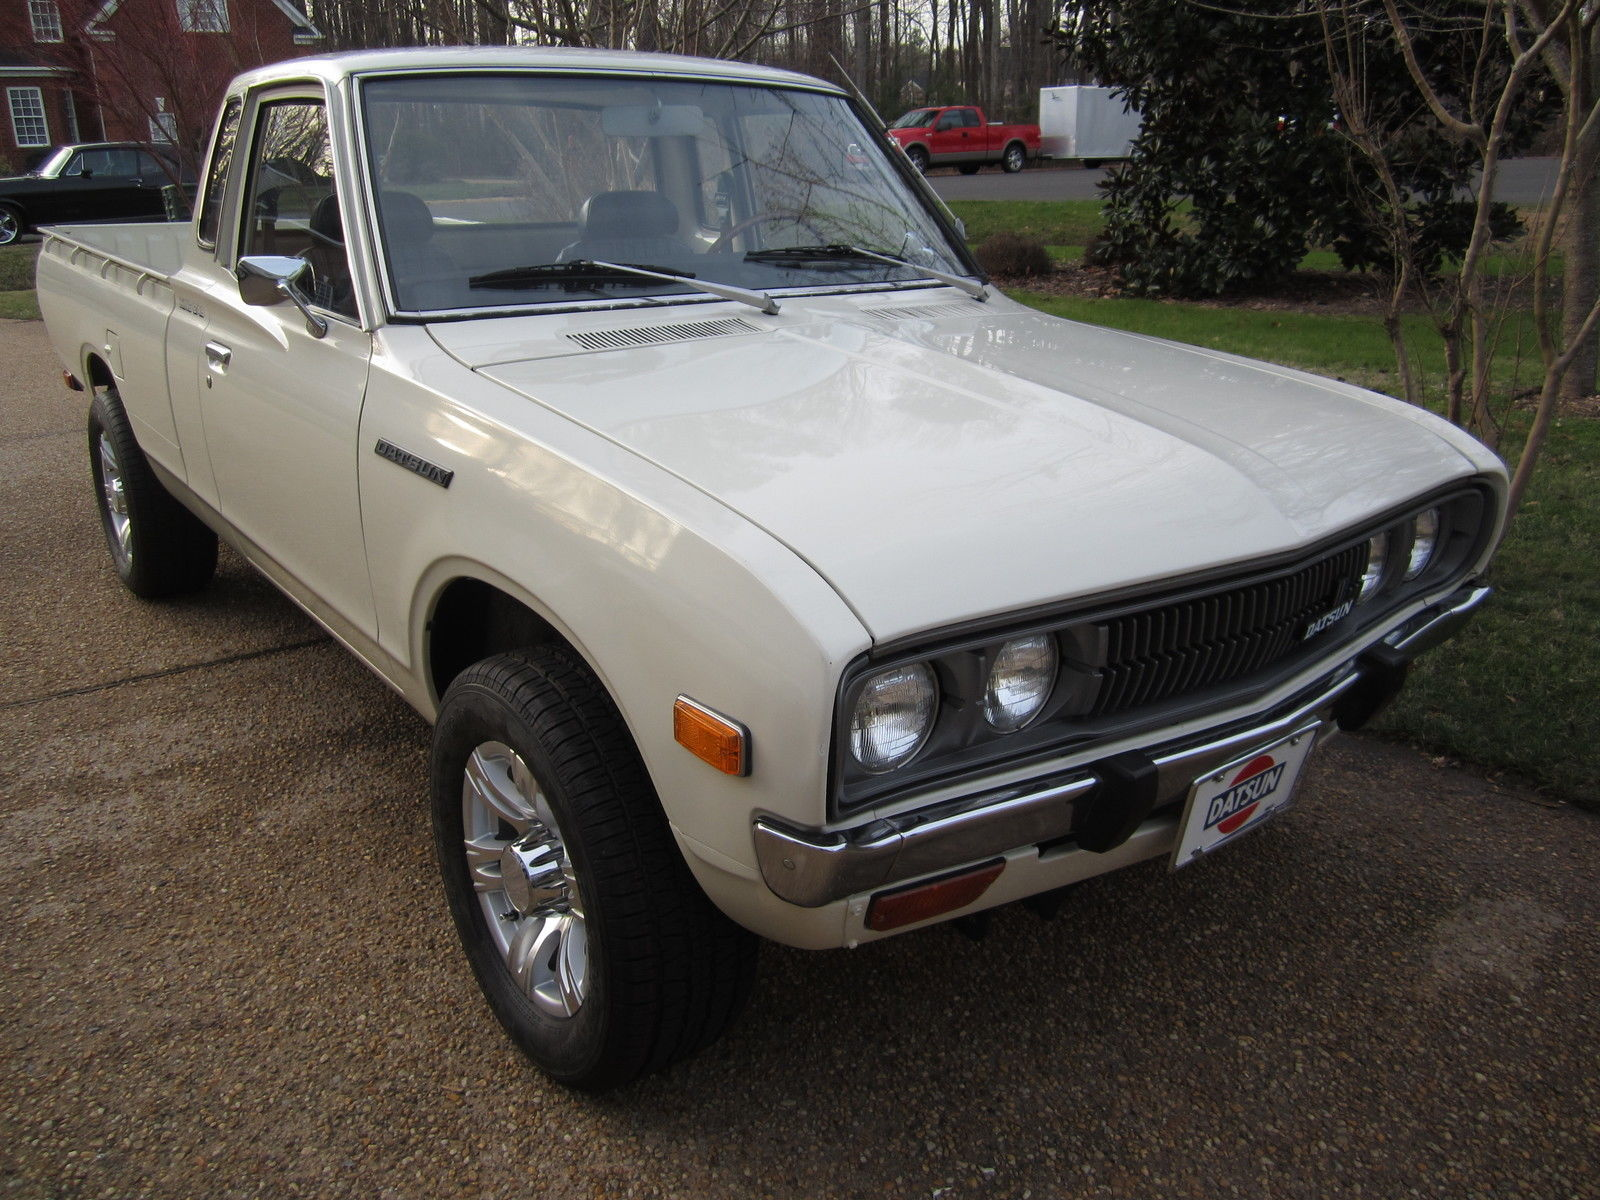 1979 Datsun 620 King Cab All Original Rust Free Low Miles ...